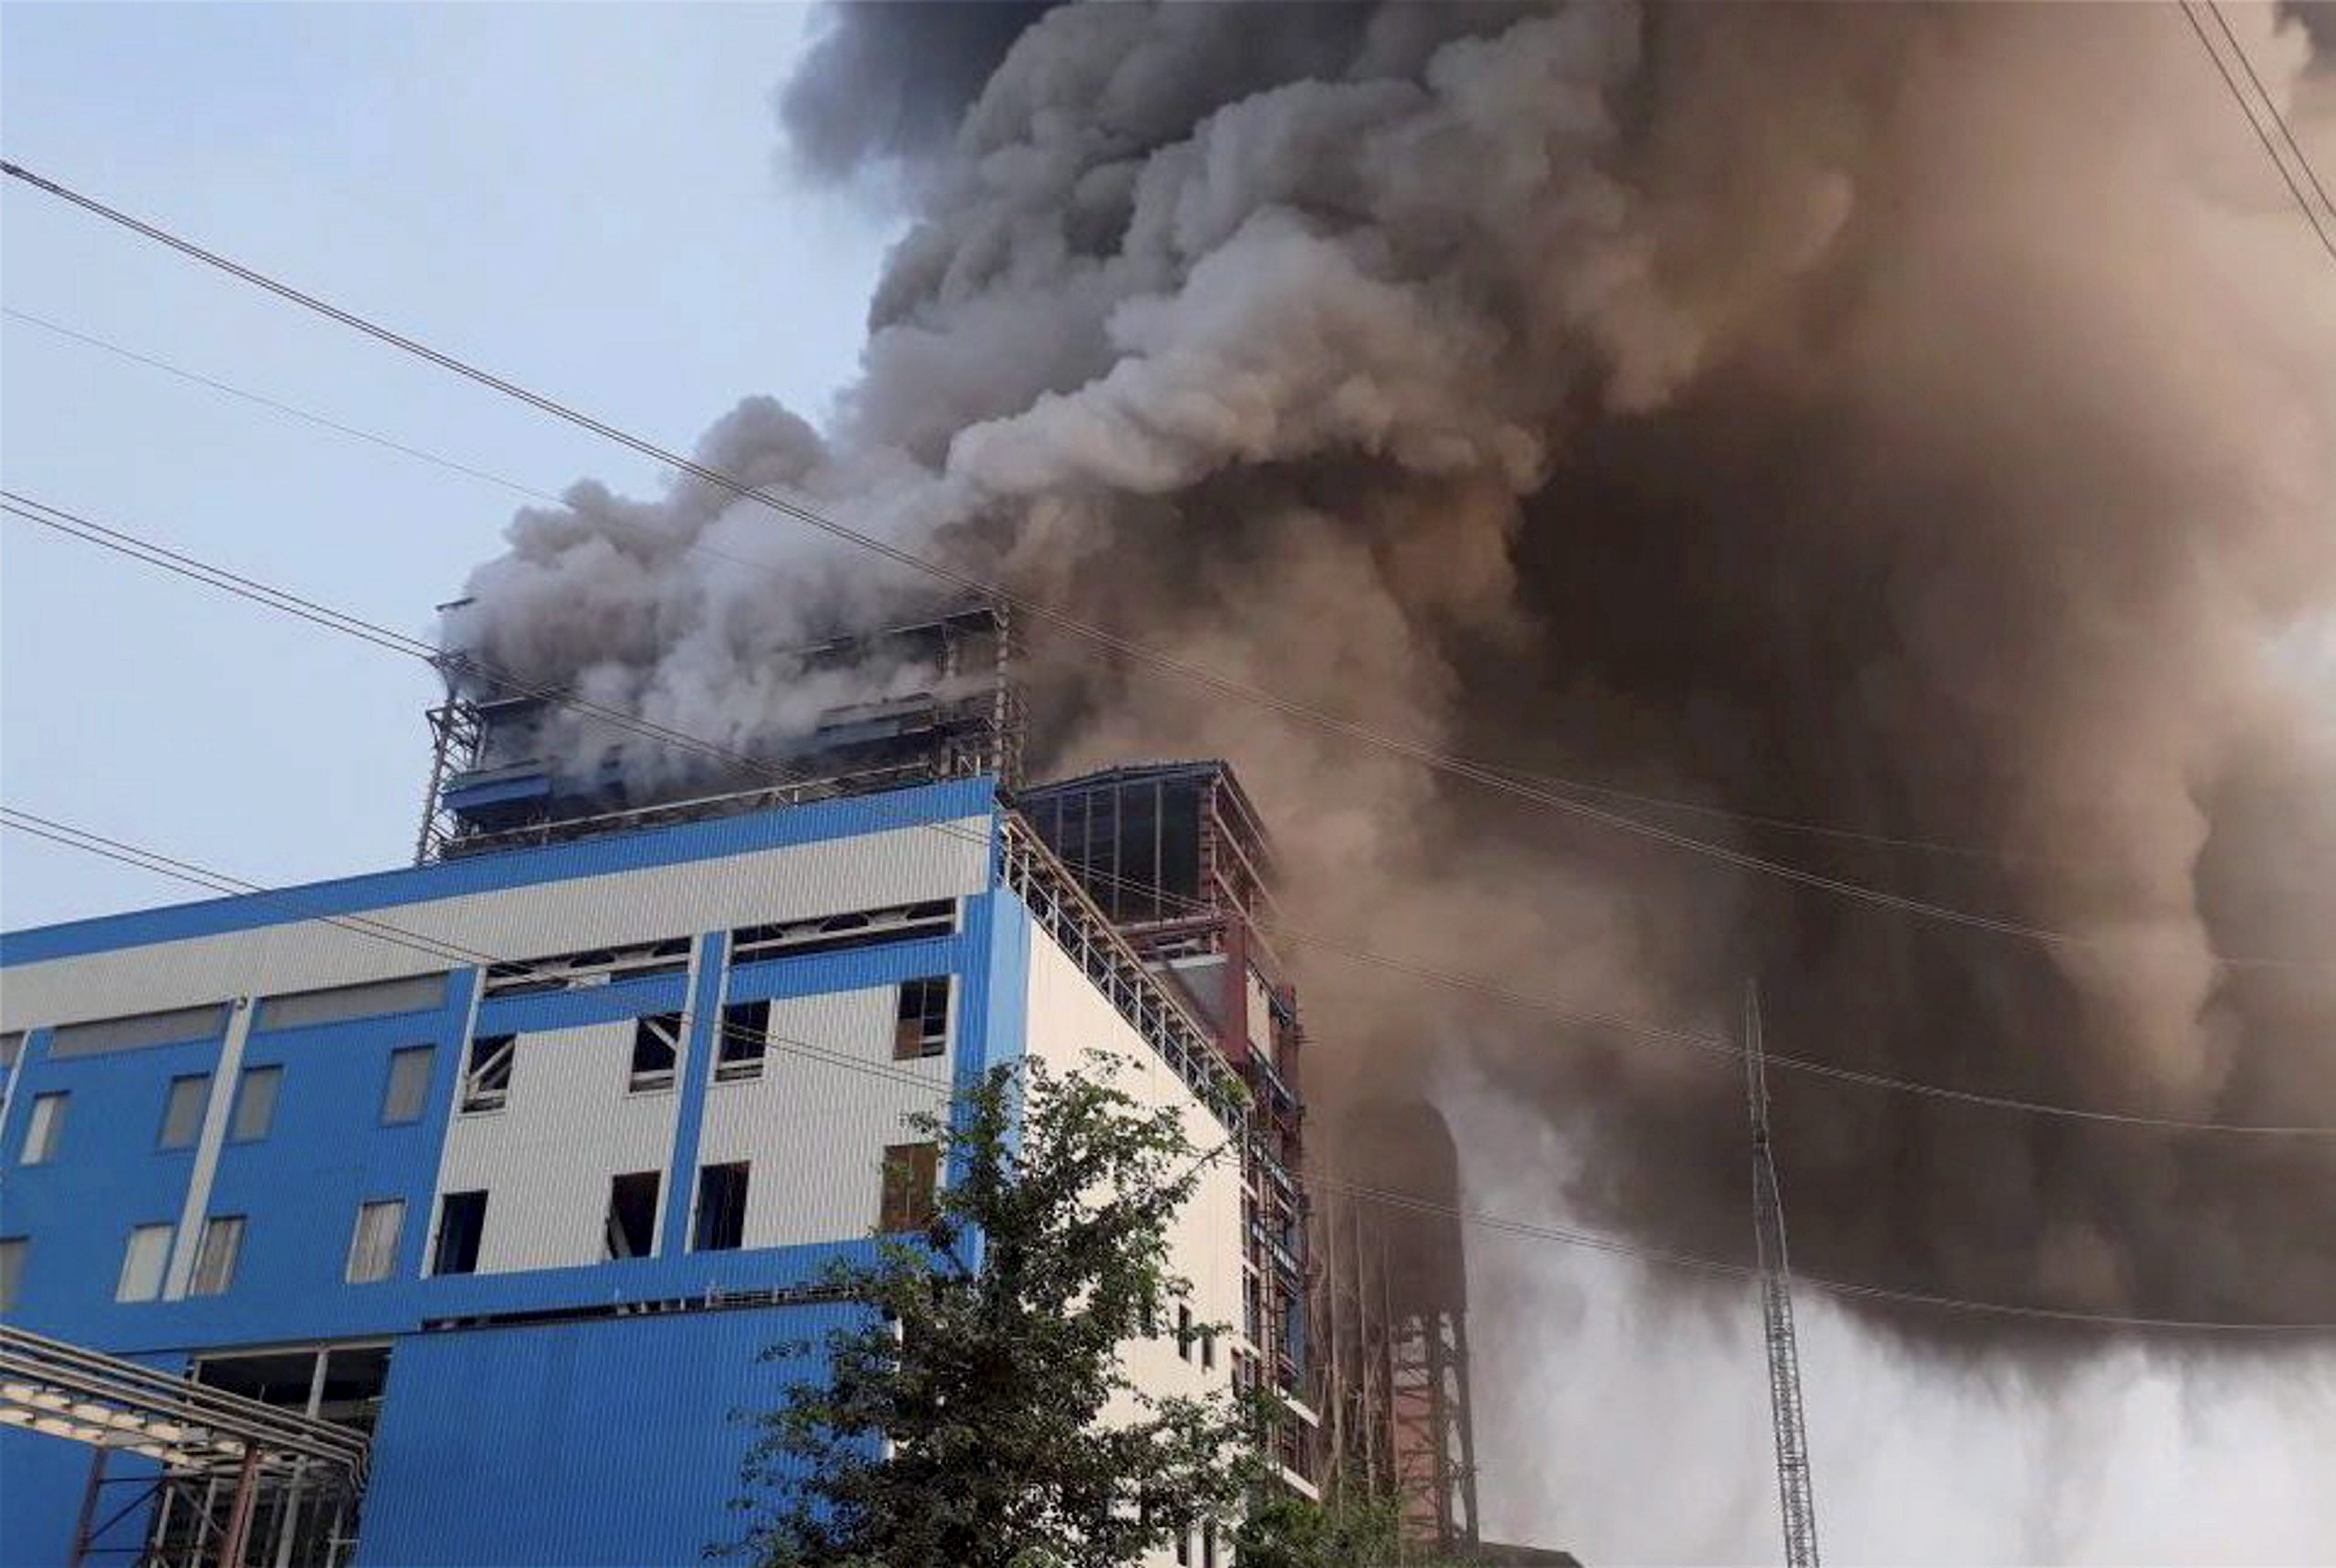 Raebareli: Smoke billowing out of NTPC's Unchahar Power Plant where a blast took place in a boiler, in Raebareli district on Wednesday. At least ten people are feared dead and several others have been injured after a boiler went off at the plant. PTI Photo (PTI11_1_2017_000188B) *** Local Caption ***